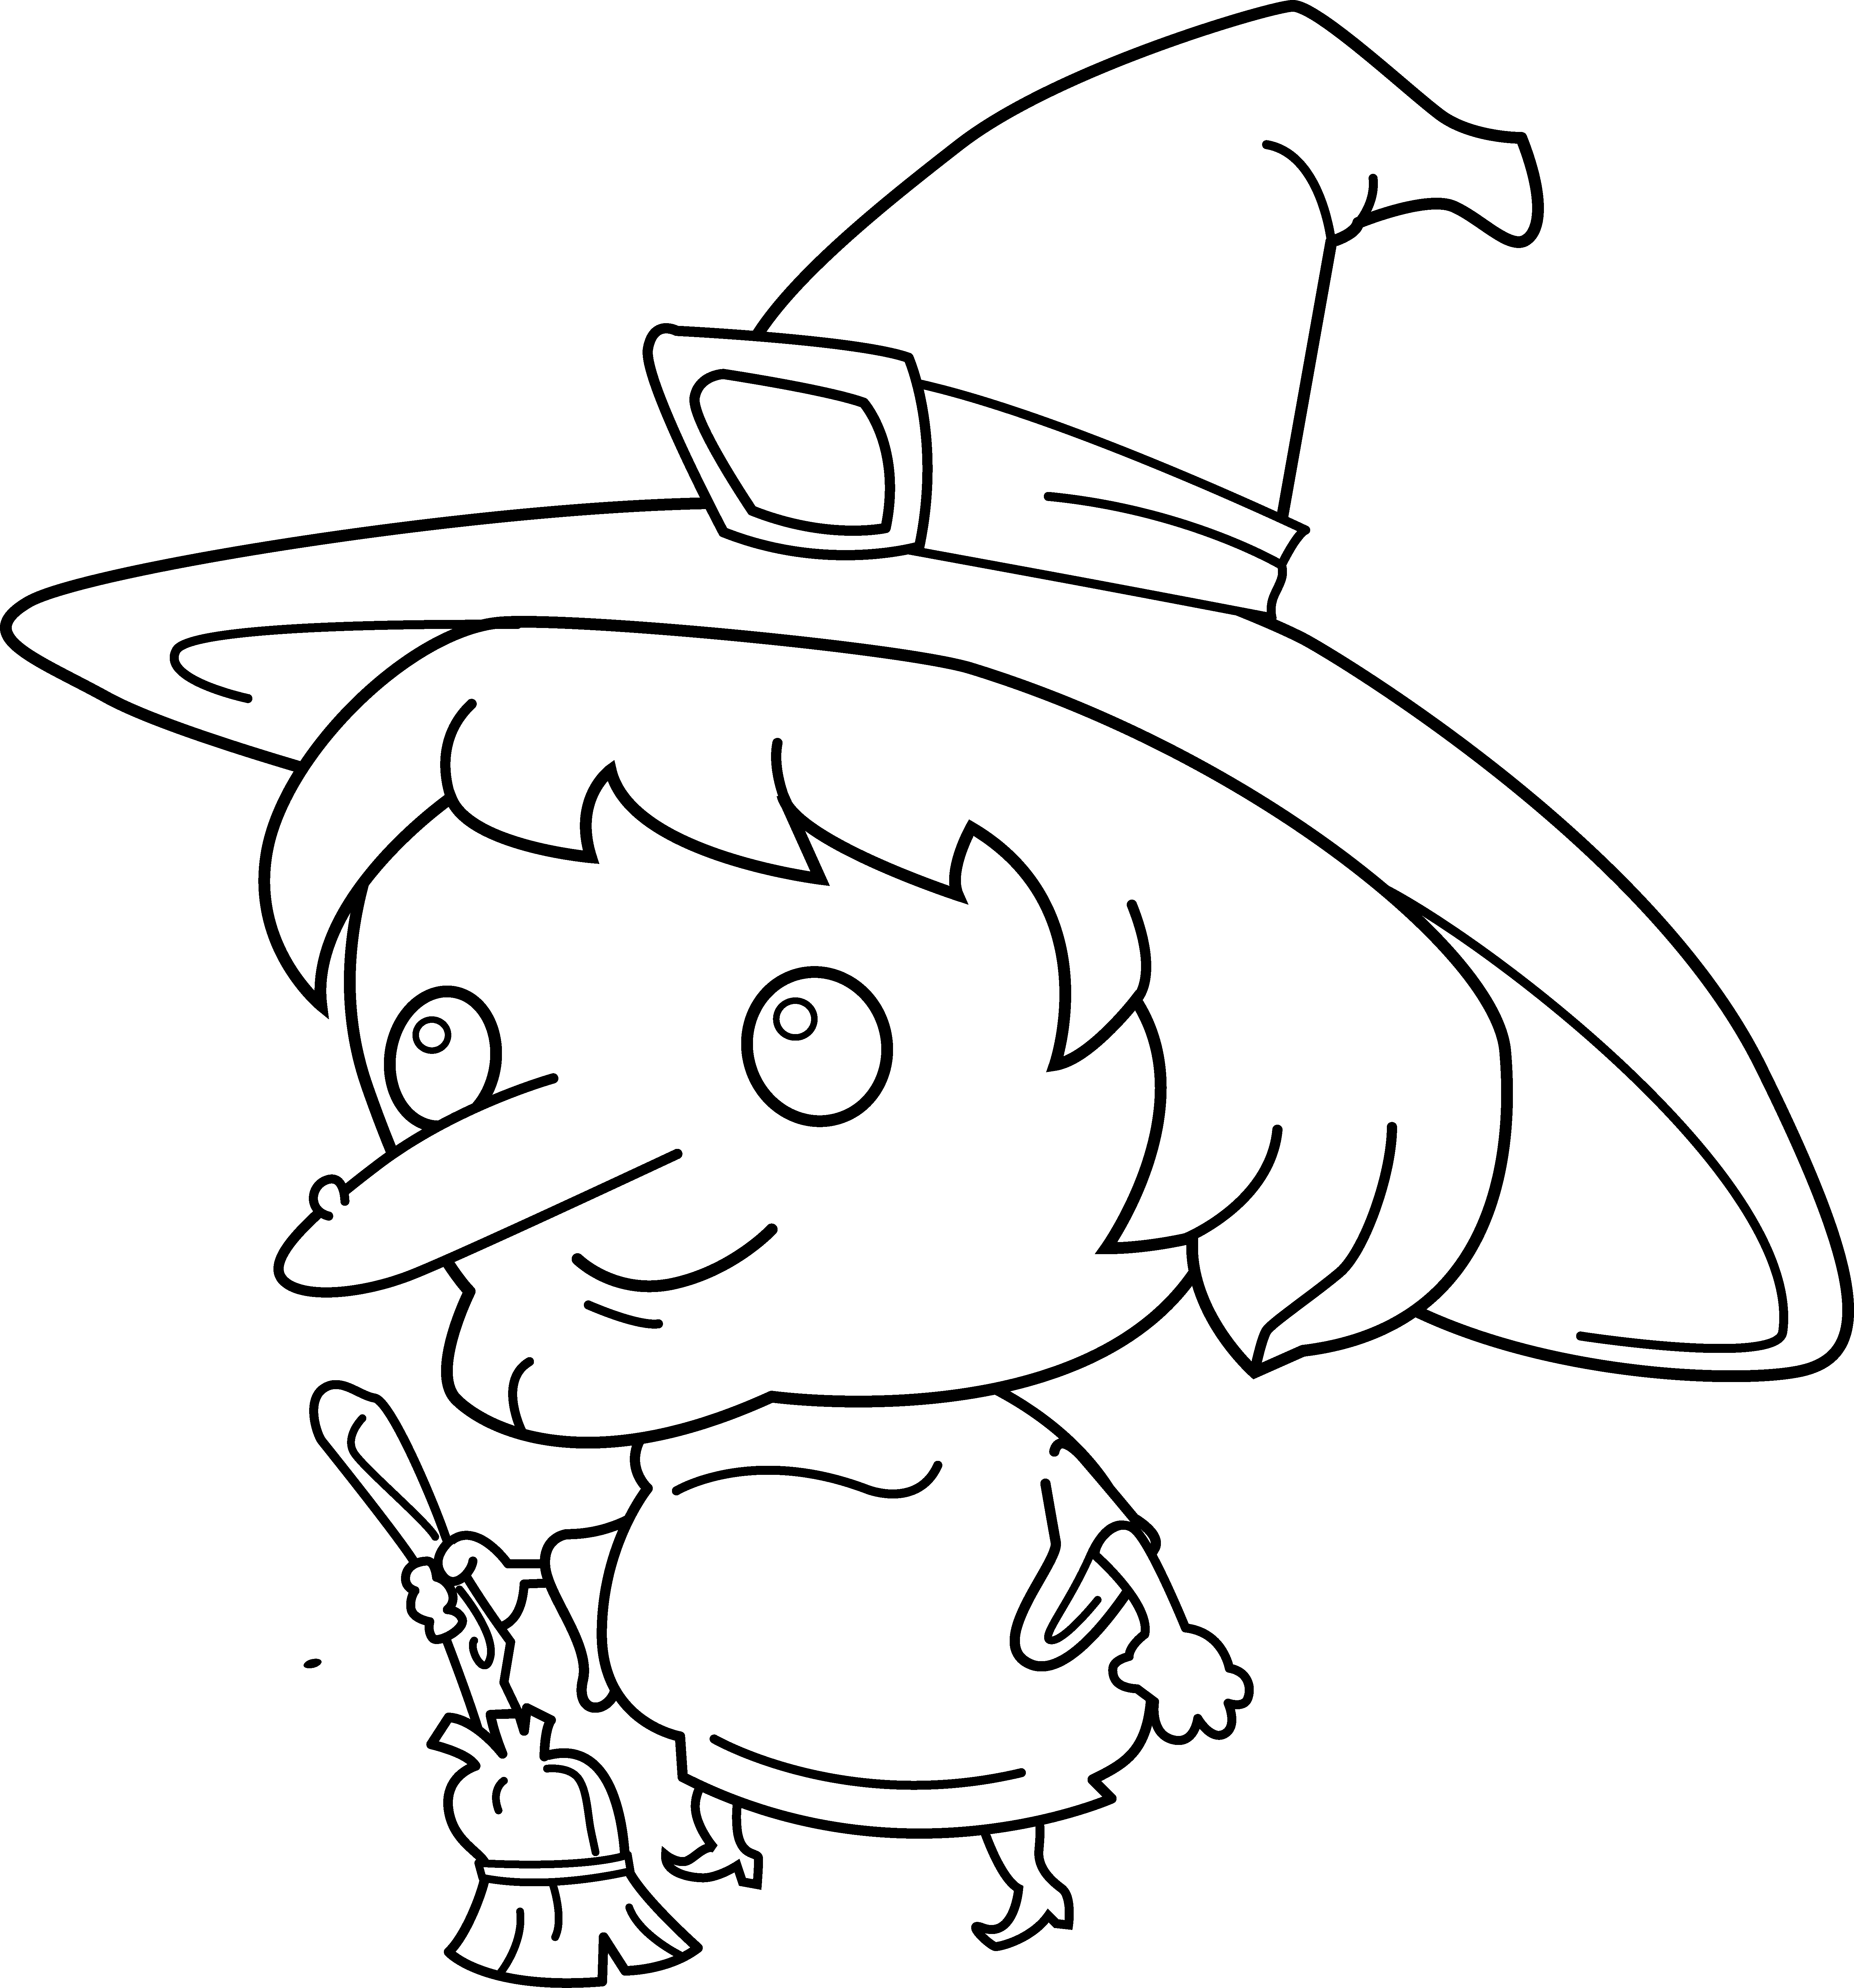 Cute Witch Coloring Page - Free Clip Art